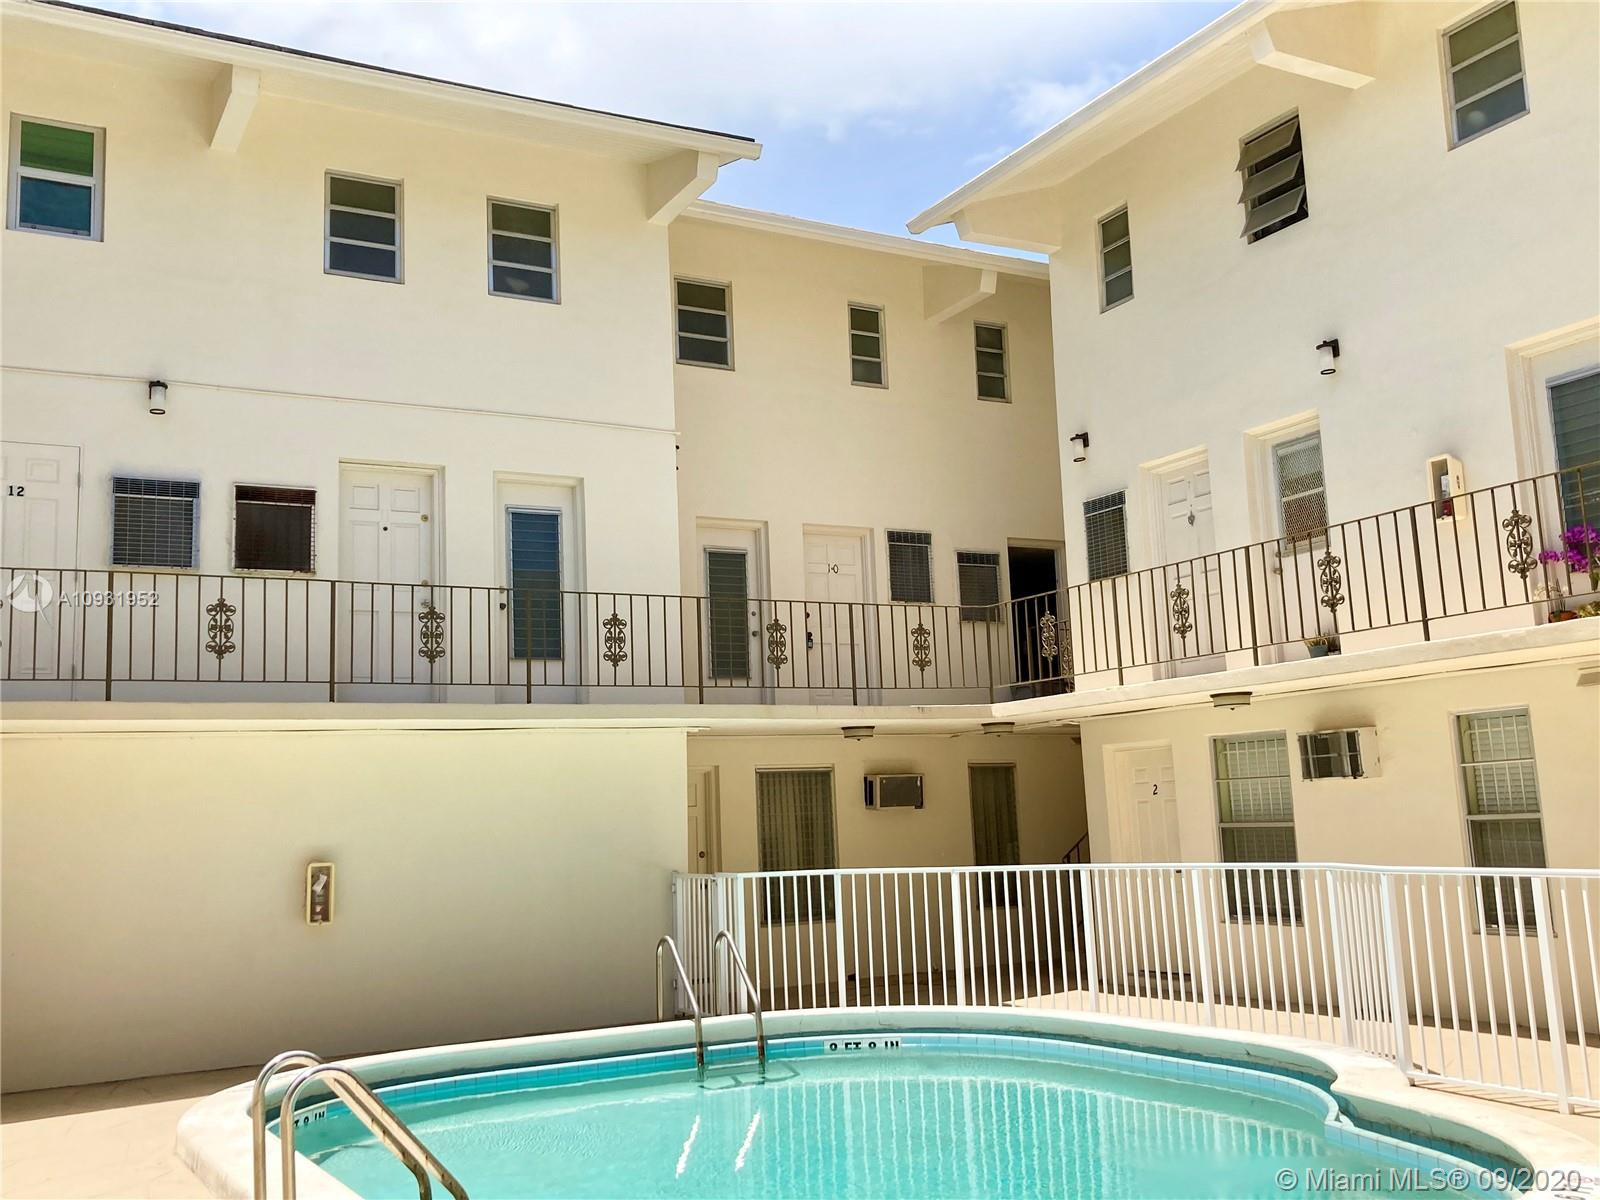 234 Antiquera Ave # 10, Coral Gables, Florida 33134, 1 Bedroom Bedrooms, ,1 BathroomBathrooms,Residential Lease,For Rent,234 Antiquera Ave # 10,A10931952